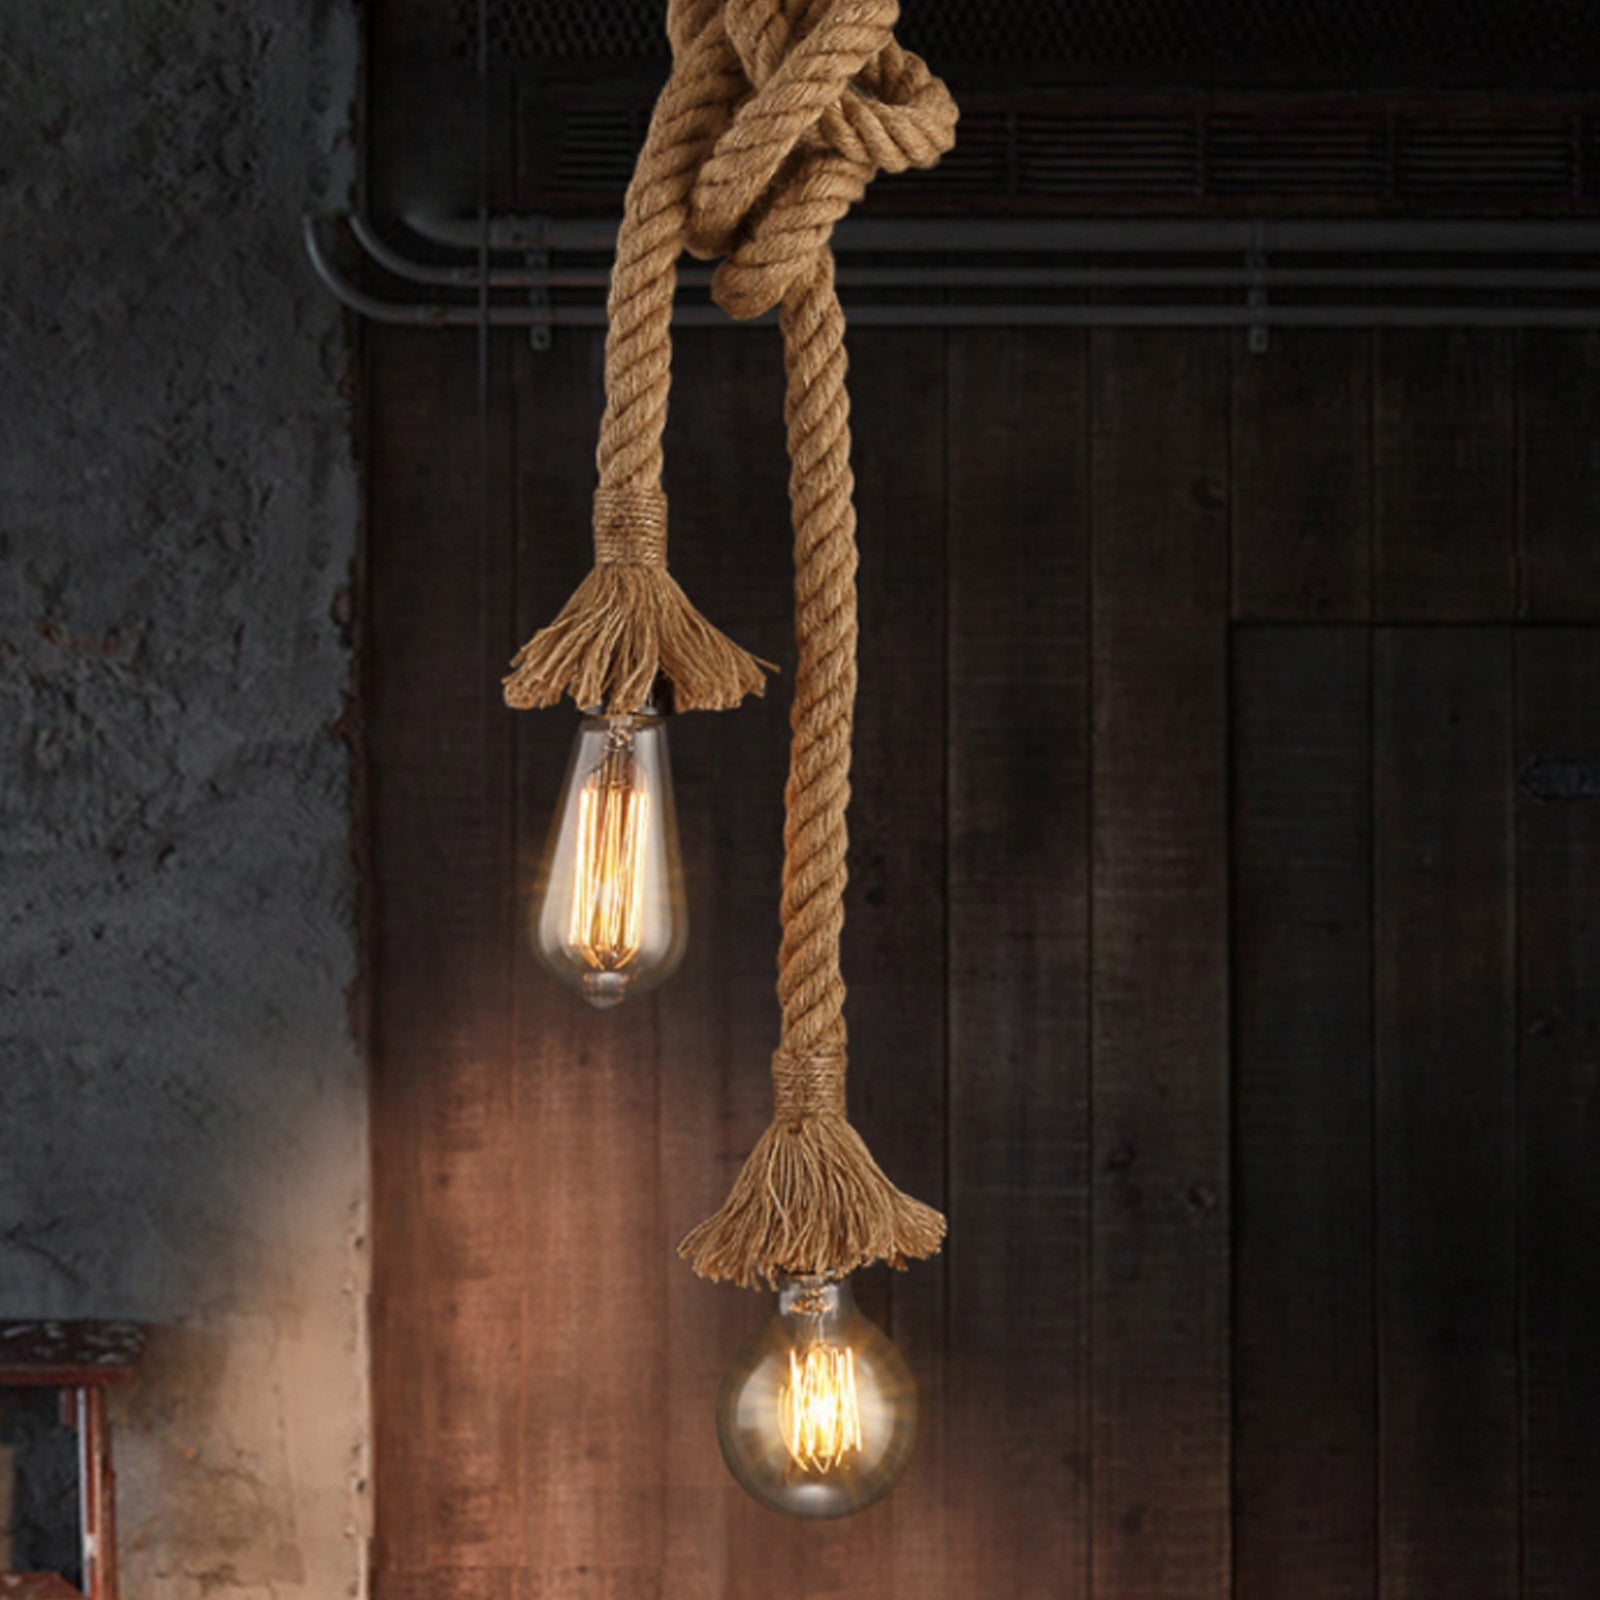 2 heads Hemp rope pendant Lamp CY-DD-123 -  2 رأس مصباح الحبل المعلق - Shop Online Furniture and Home Decor Store in Dubai, UAE at ebarza